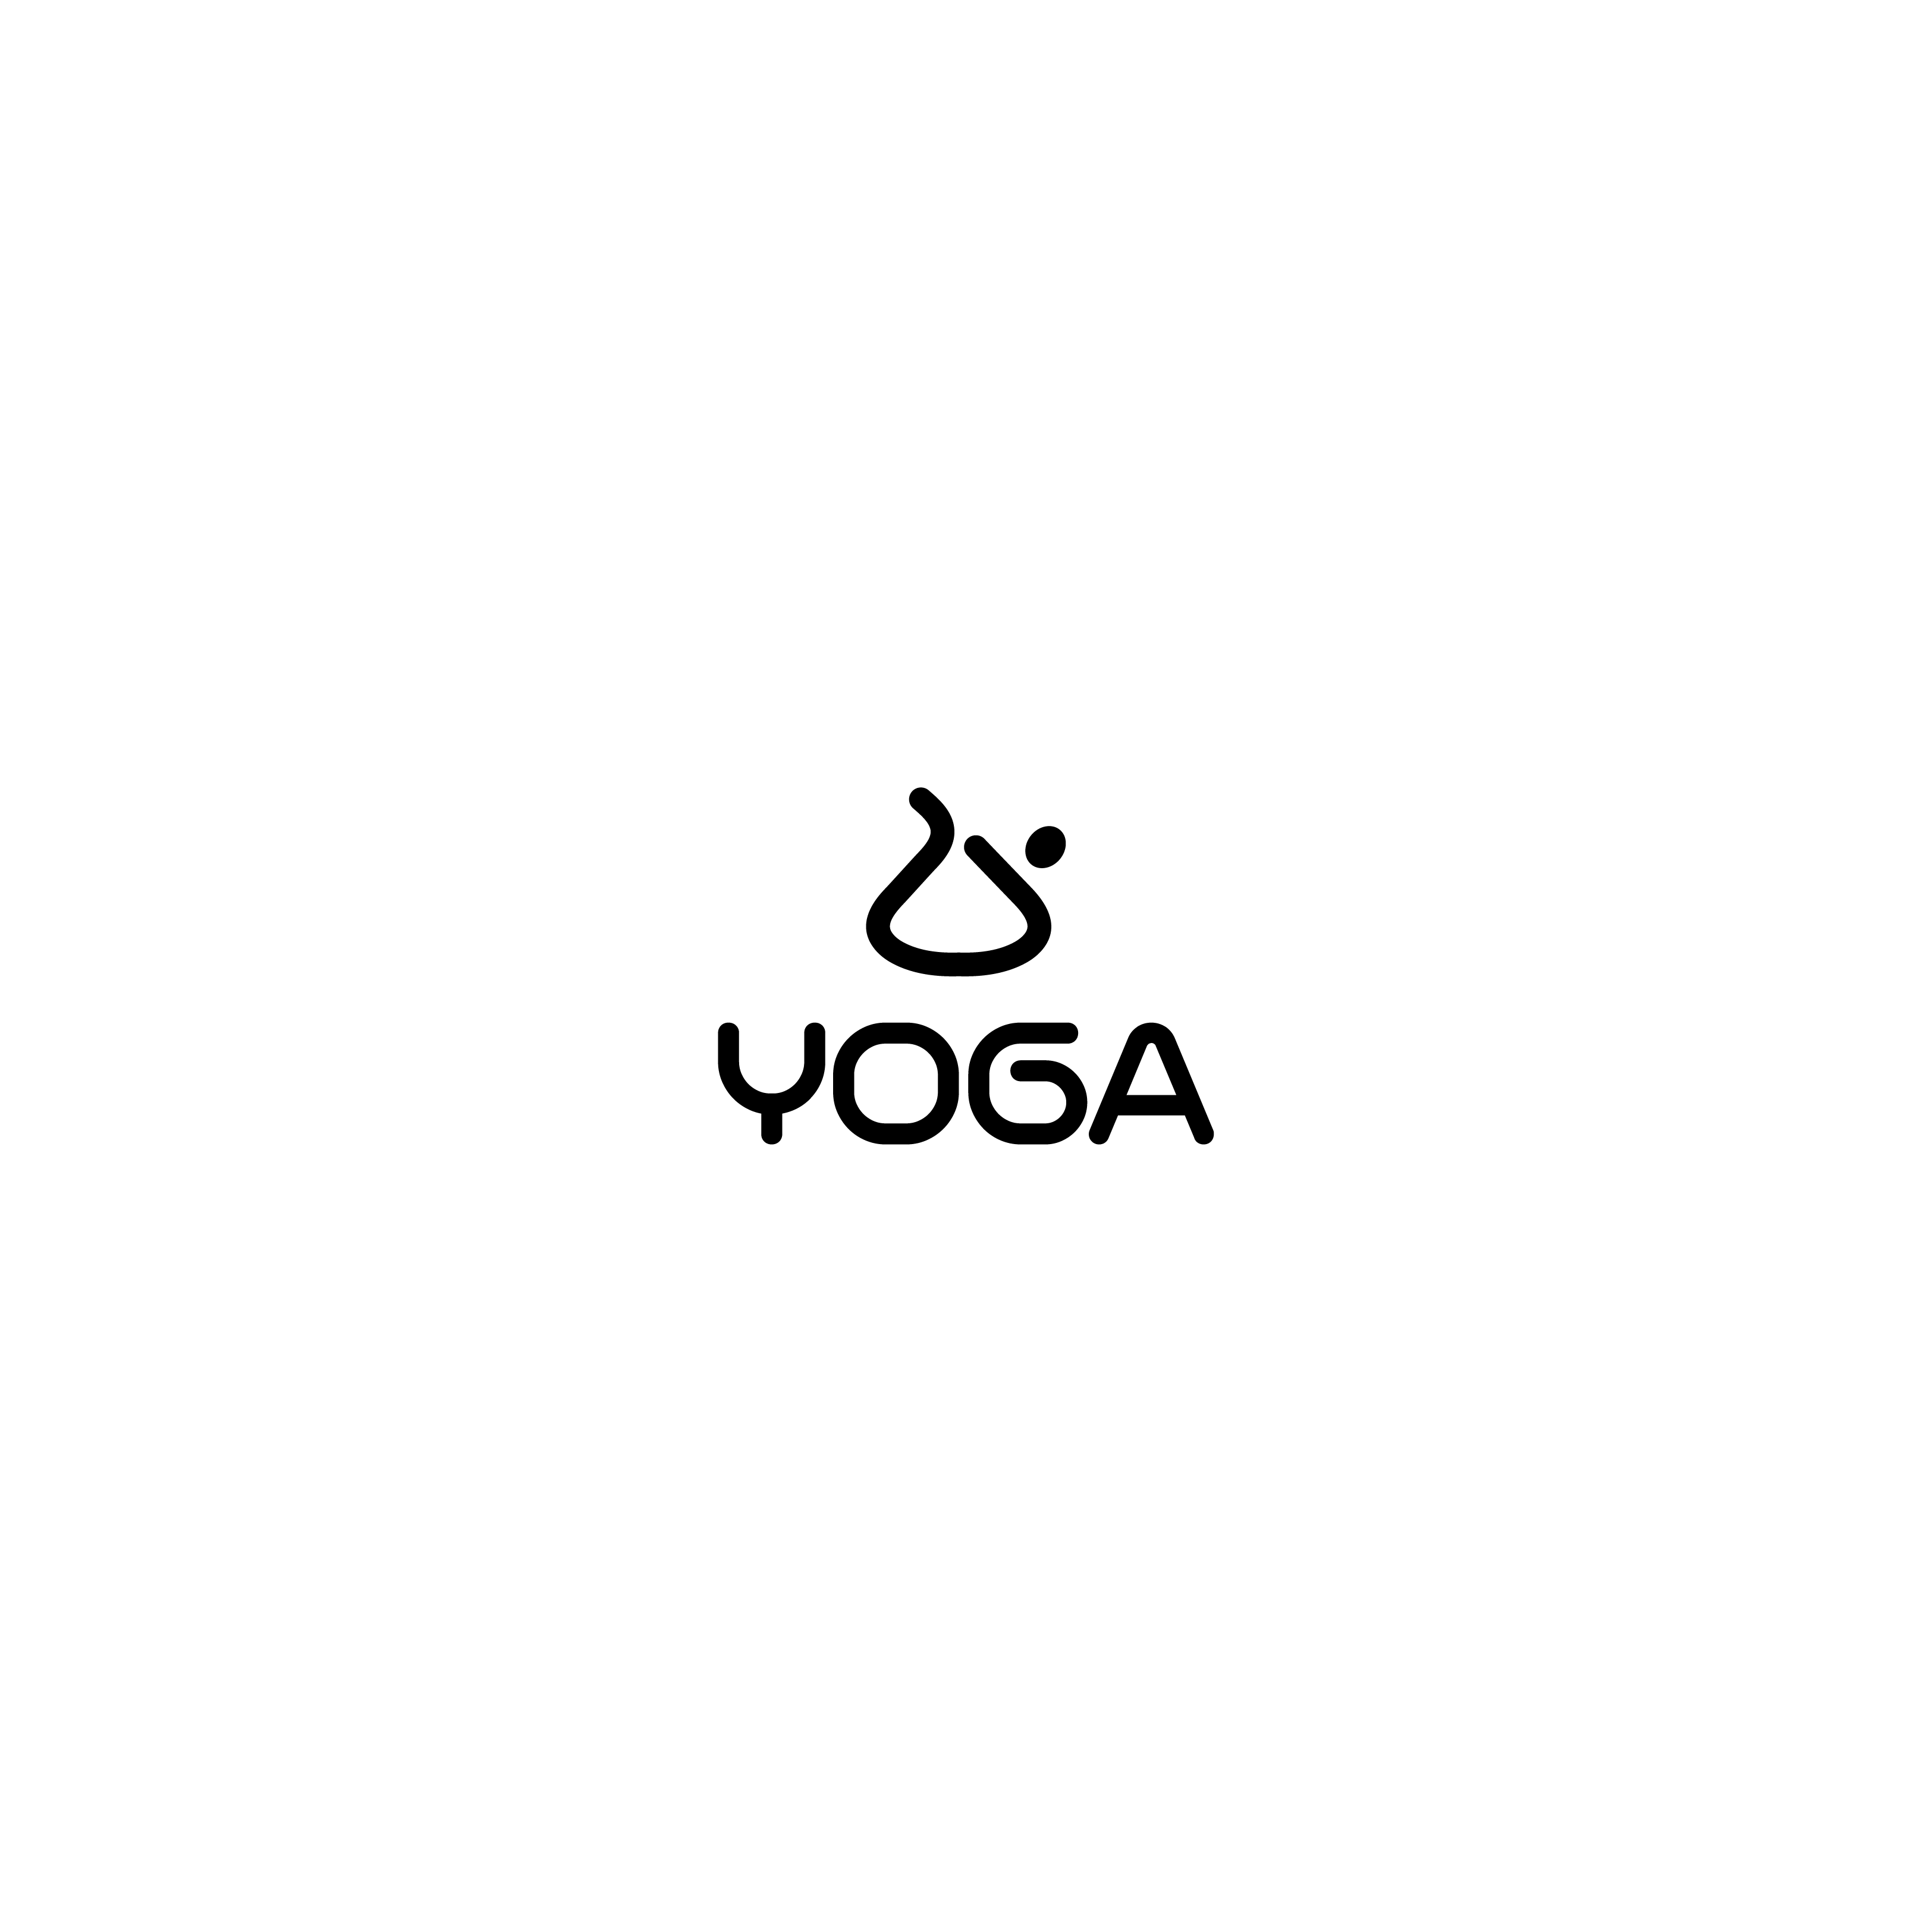 NEW YOGA ACCESSORIES BUSINESS - LET YOUR MIND RUN FREE